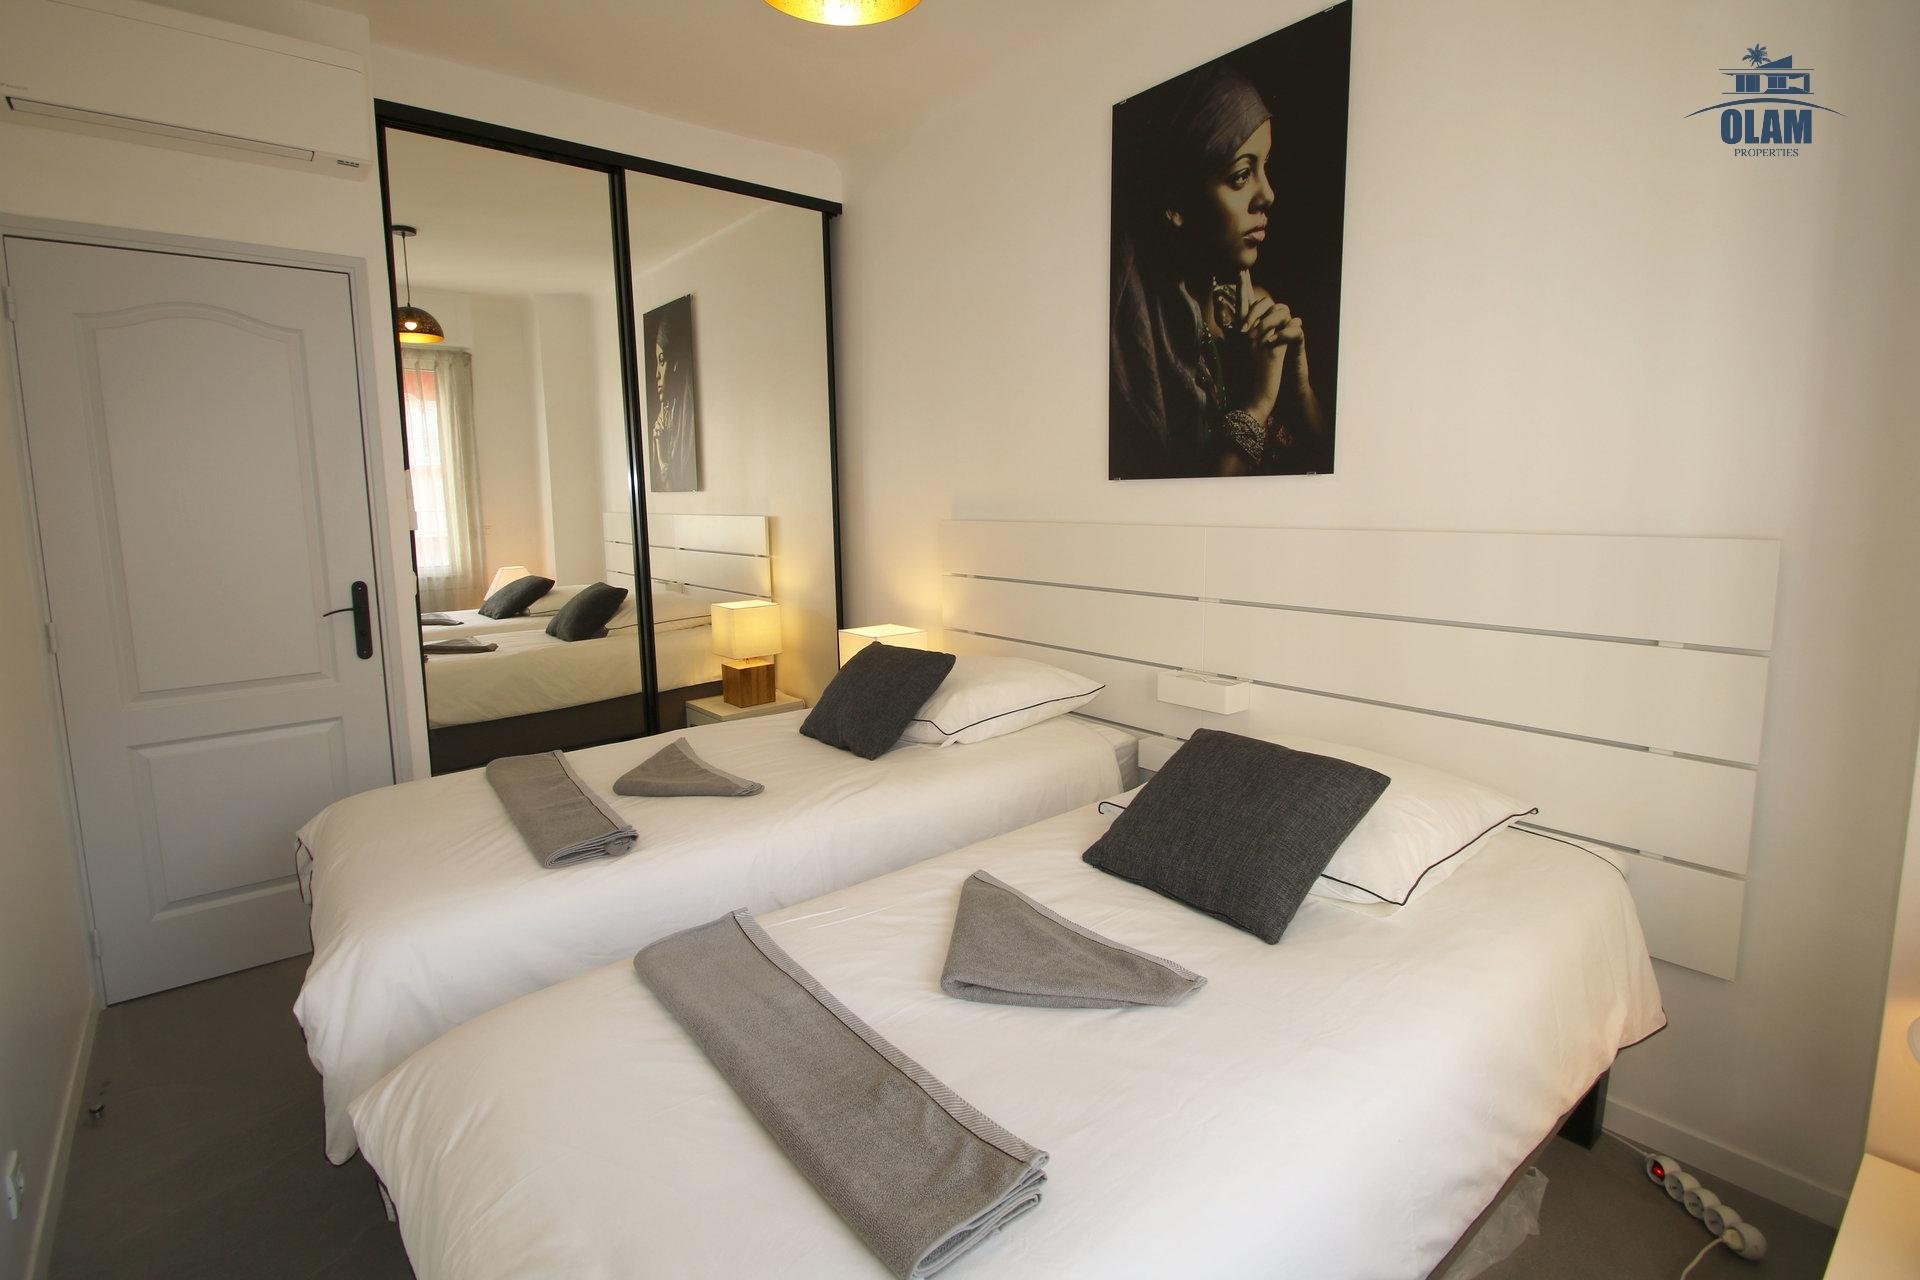 Bedroom, Cannes, Holidays, Croisette, French Riviera